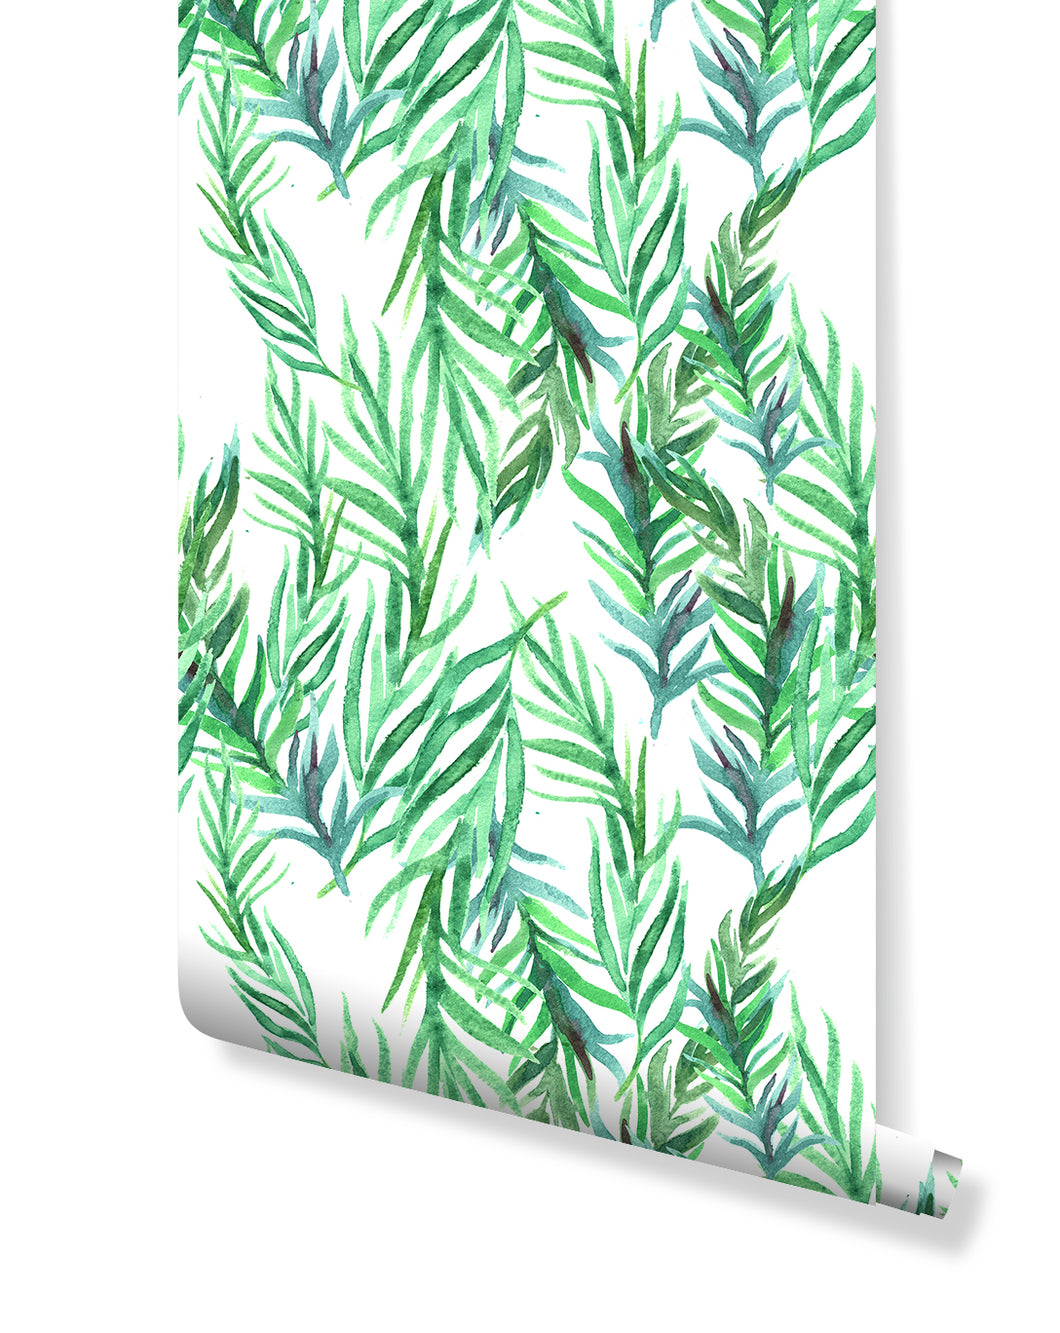 Watercolor Green Leaves Removable Wallpaper Floral Tropic Botanical illustration Self Adhesive Peel and Stick Jungle Interior  CC057